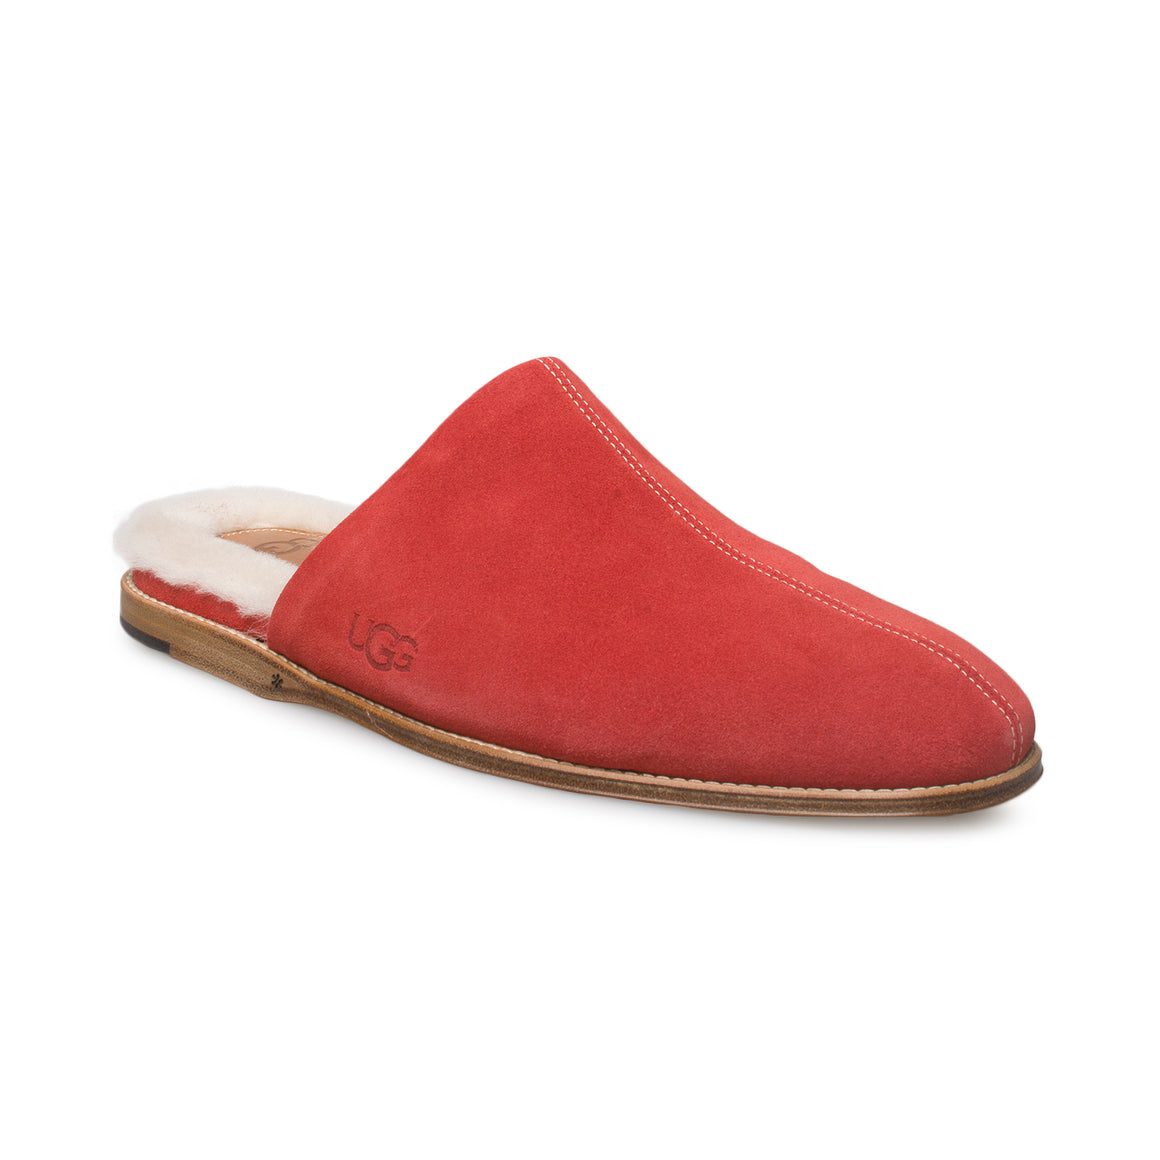 UGG Chateau Slip On Samba Red Slippers - Women's